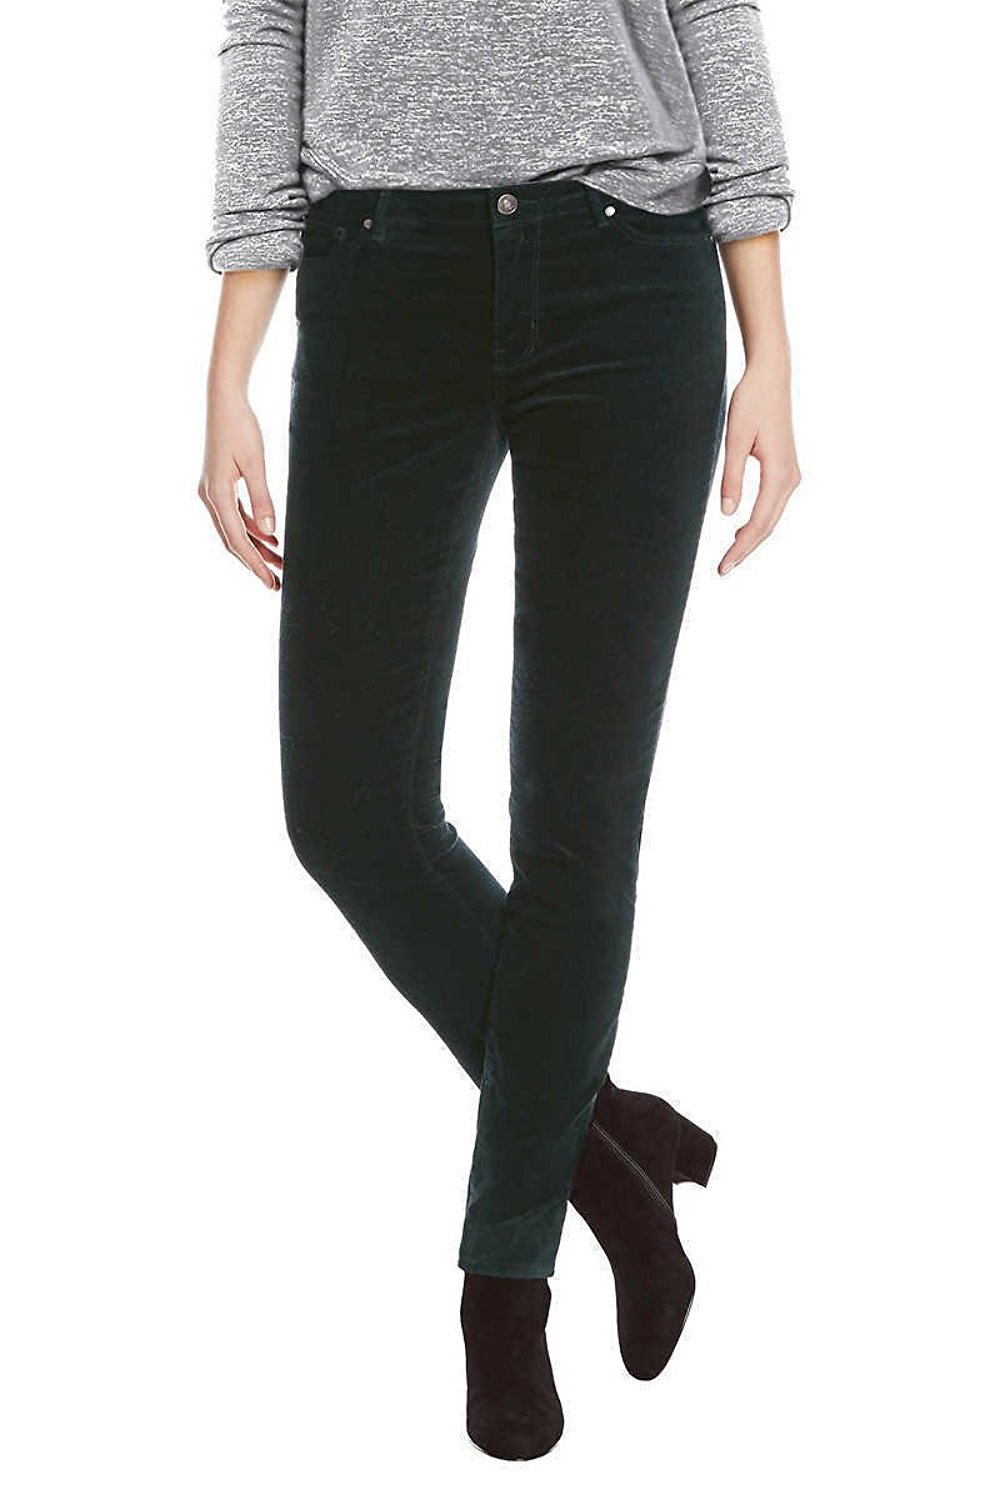 BUFFALO David Bitton Women's Faux Velvet Skinny Pant with Stretch